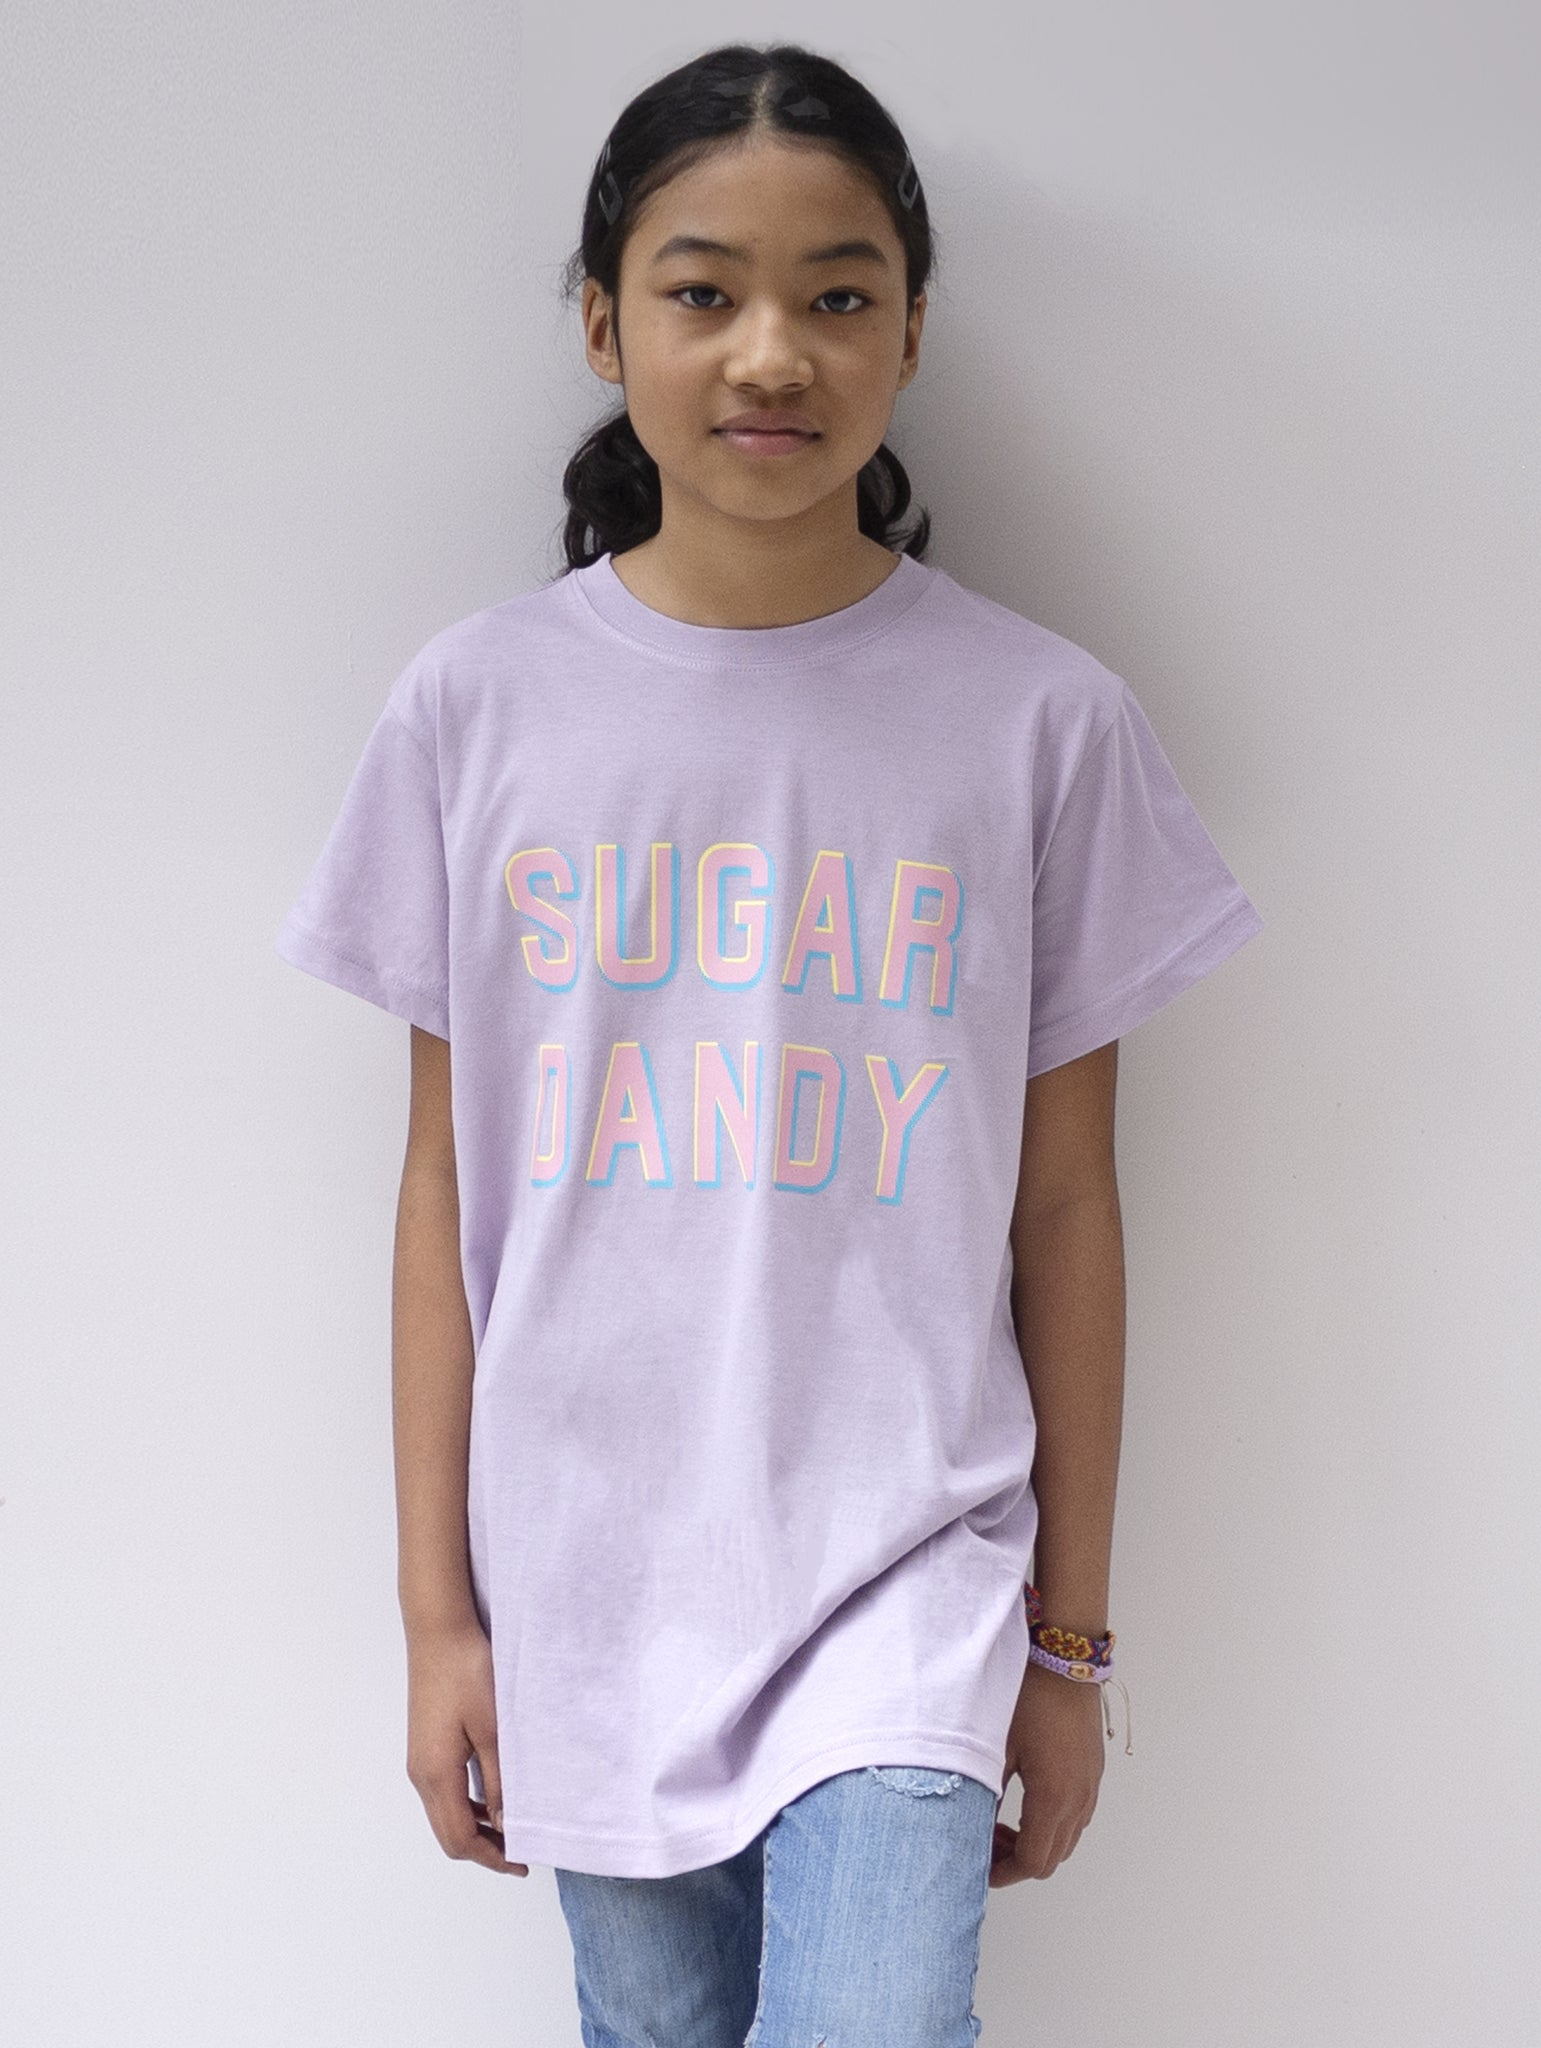 DANDY STAR SUGAR DANDY T-SHIRT